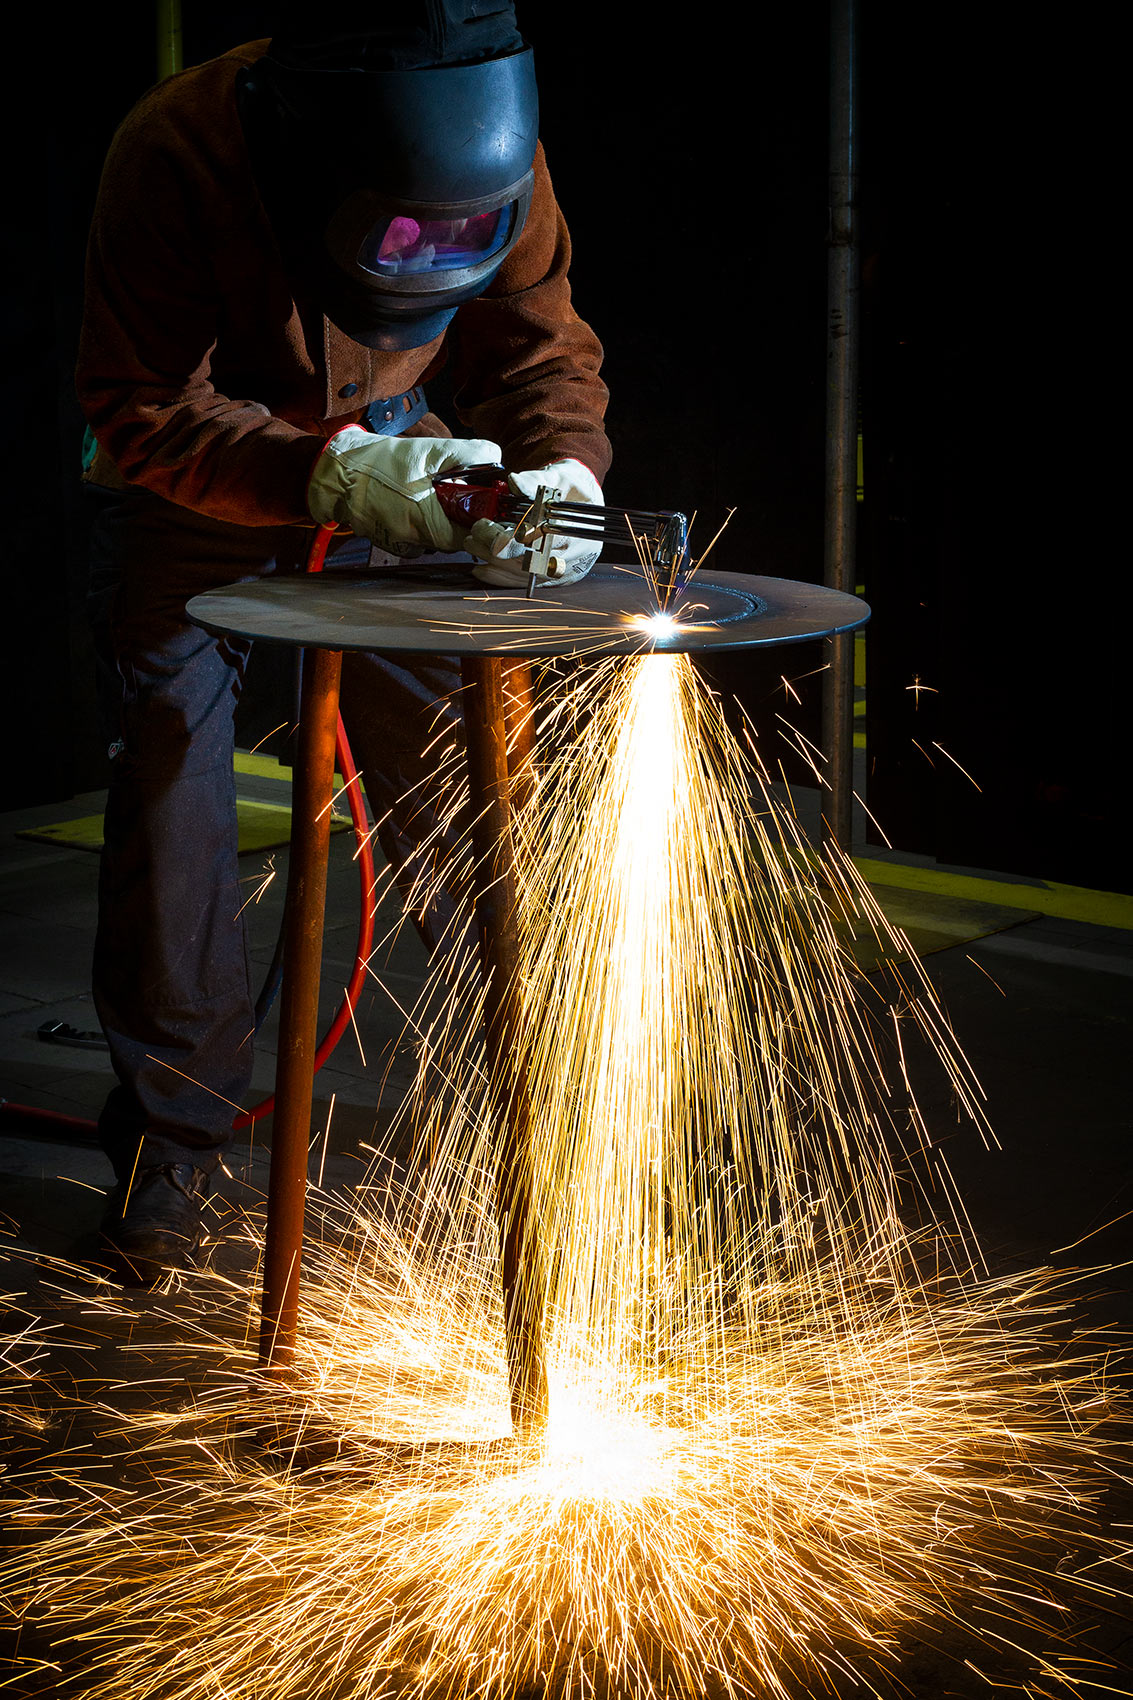 Sparks flying as Cadent Gas engineer cuts metal with a welding torch in Birmingham workshop